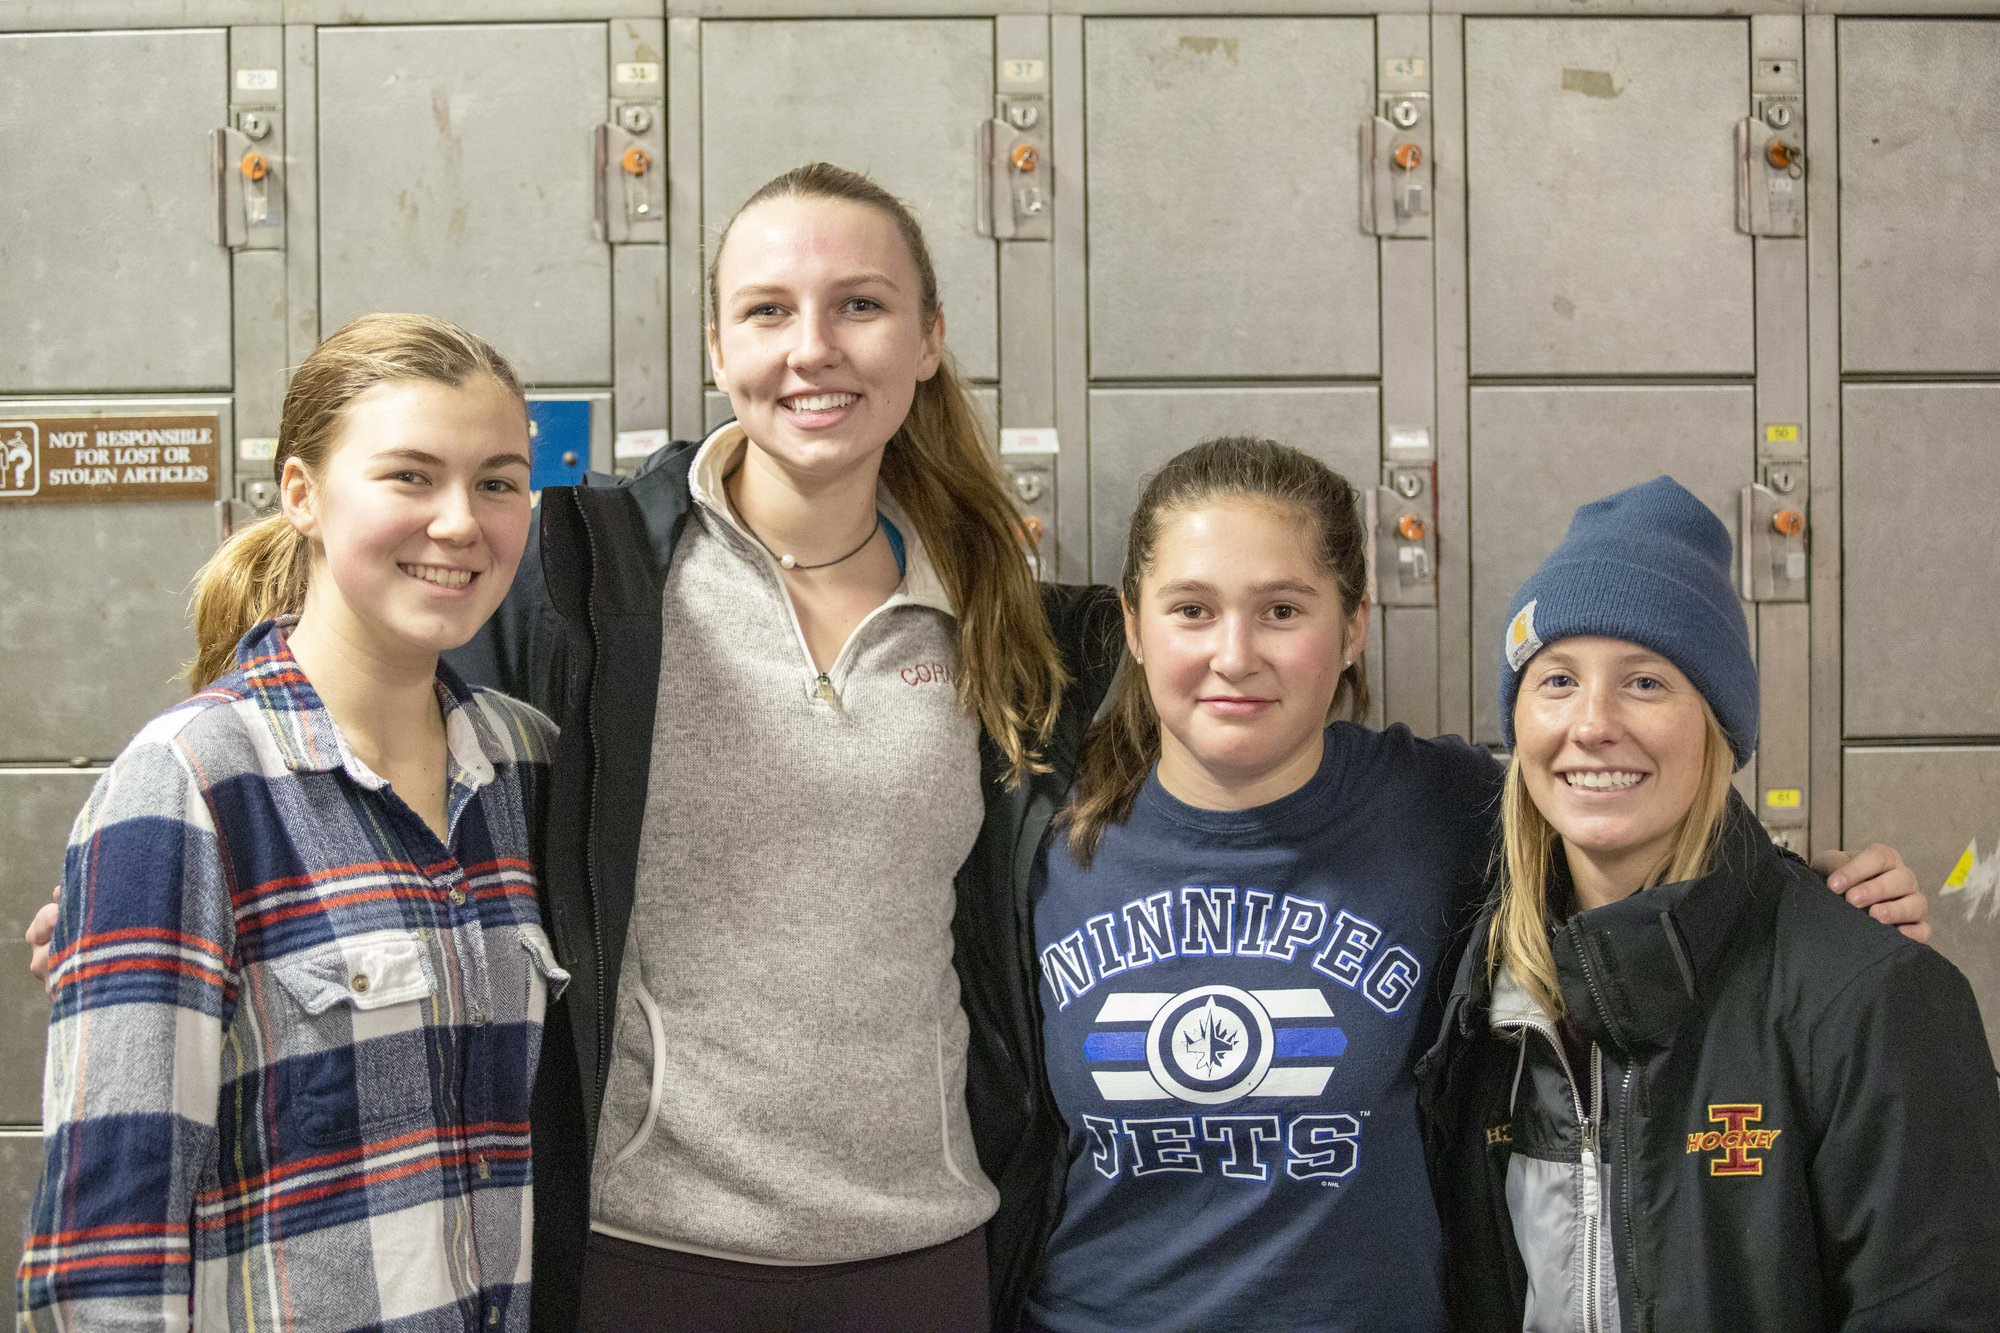 Ithaca girls hockey captains (from left to right) Leah Henseler, Nicole Nixon and Tess Crane and head coach Holly Norsen.